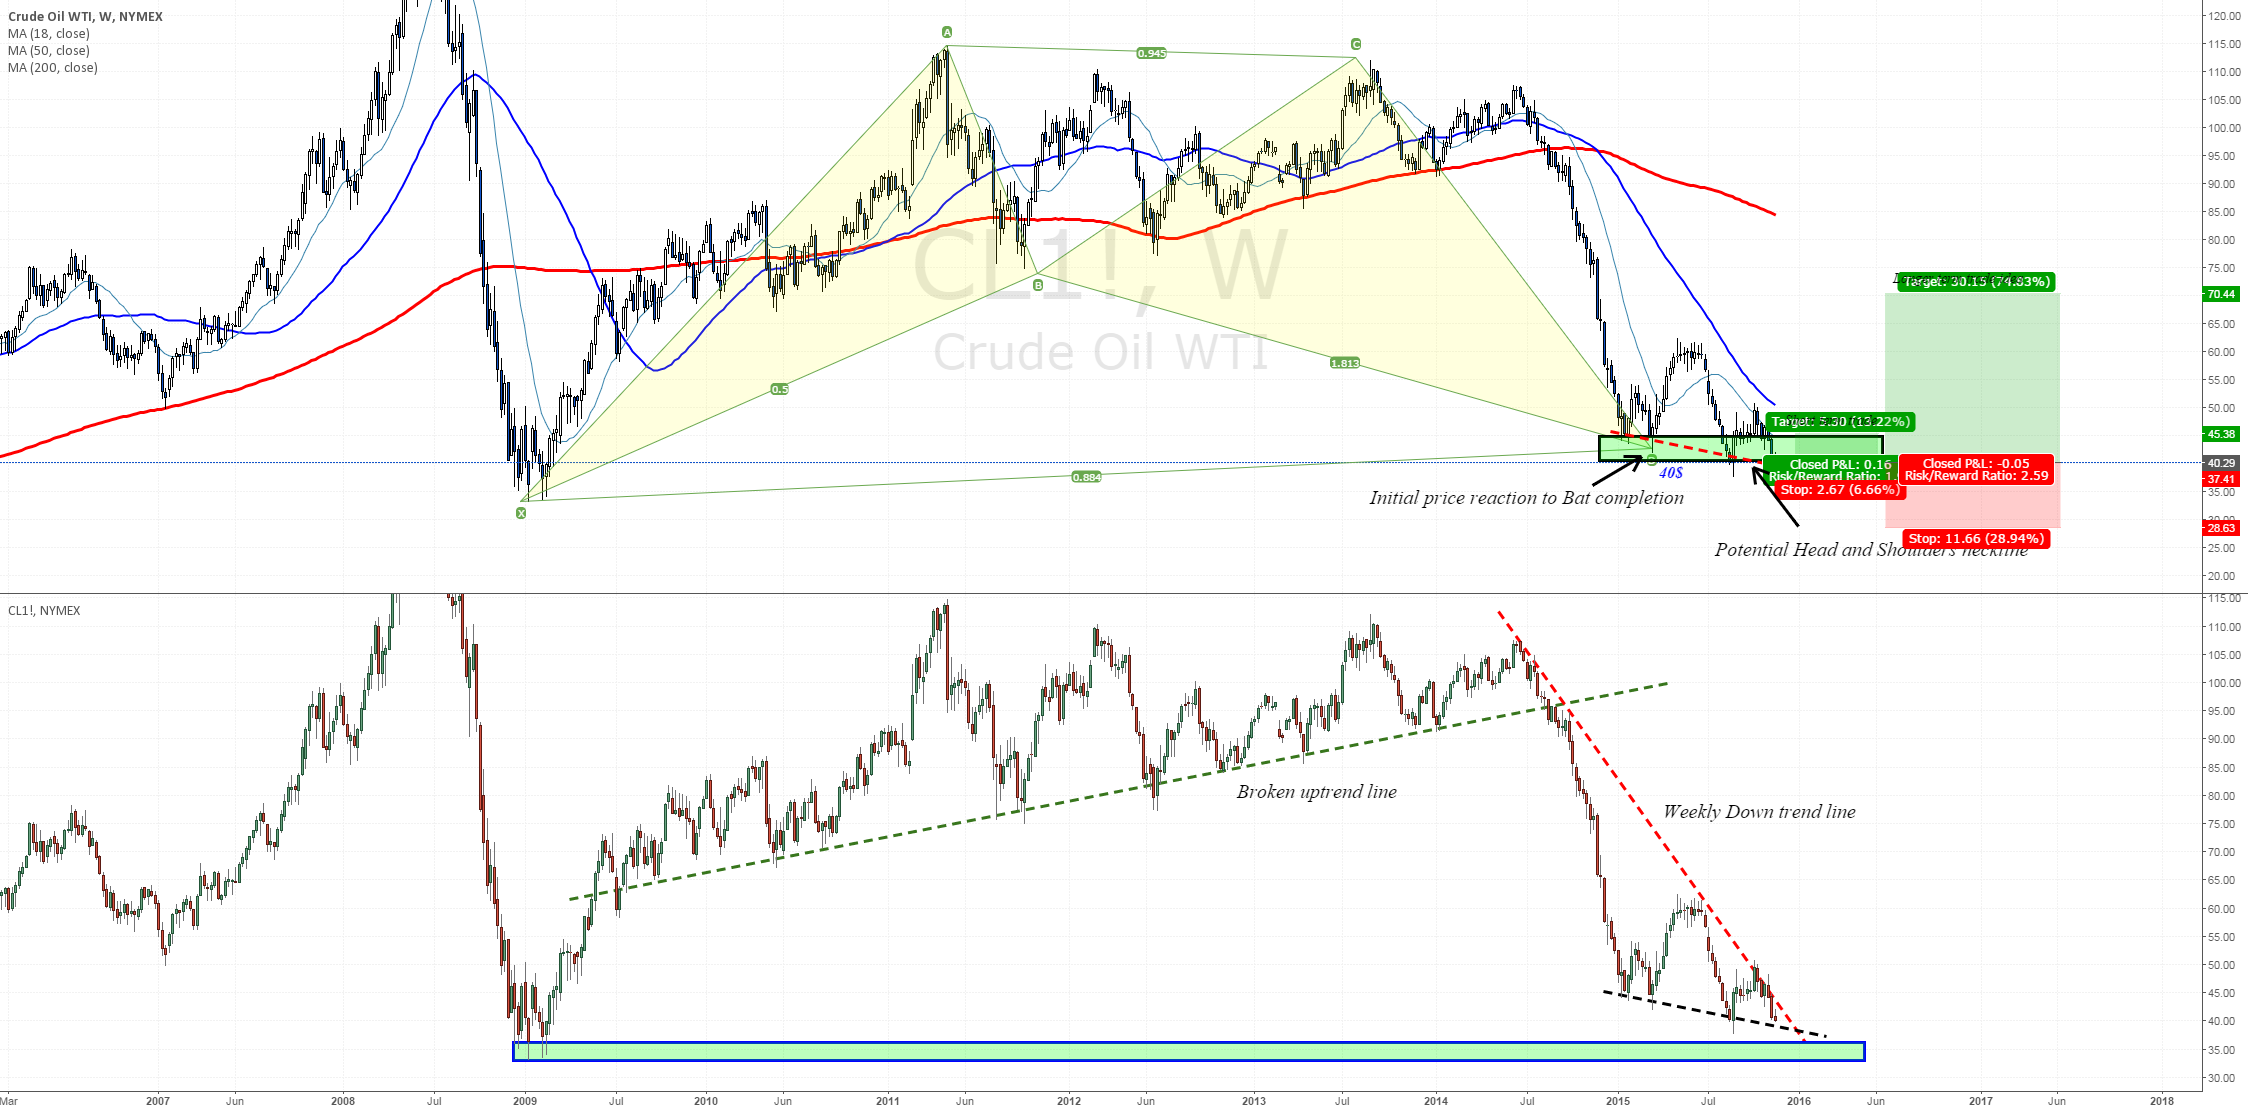 Crude is testing critical support zone